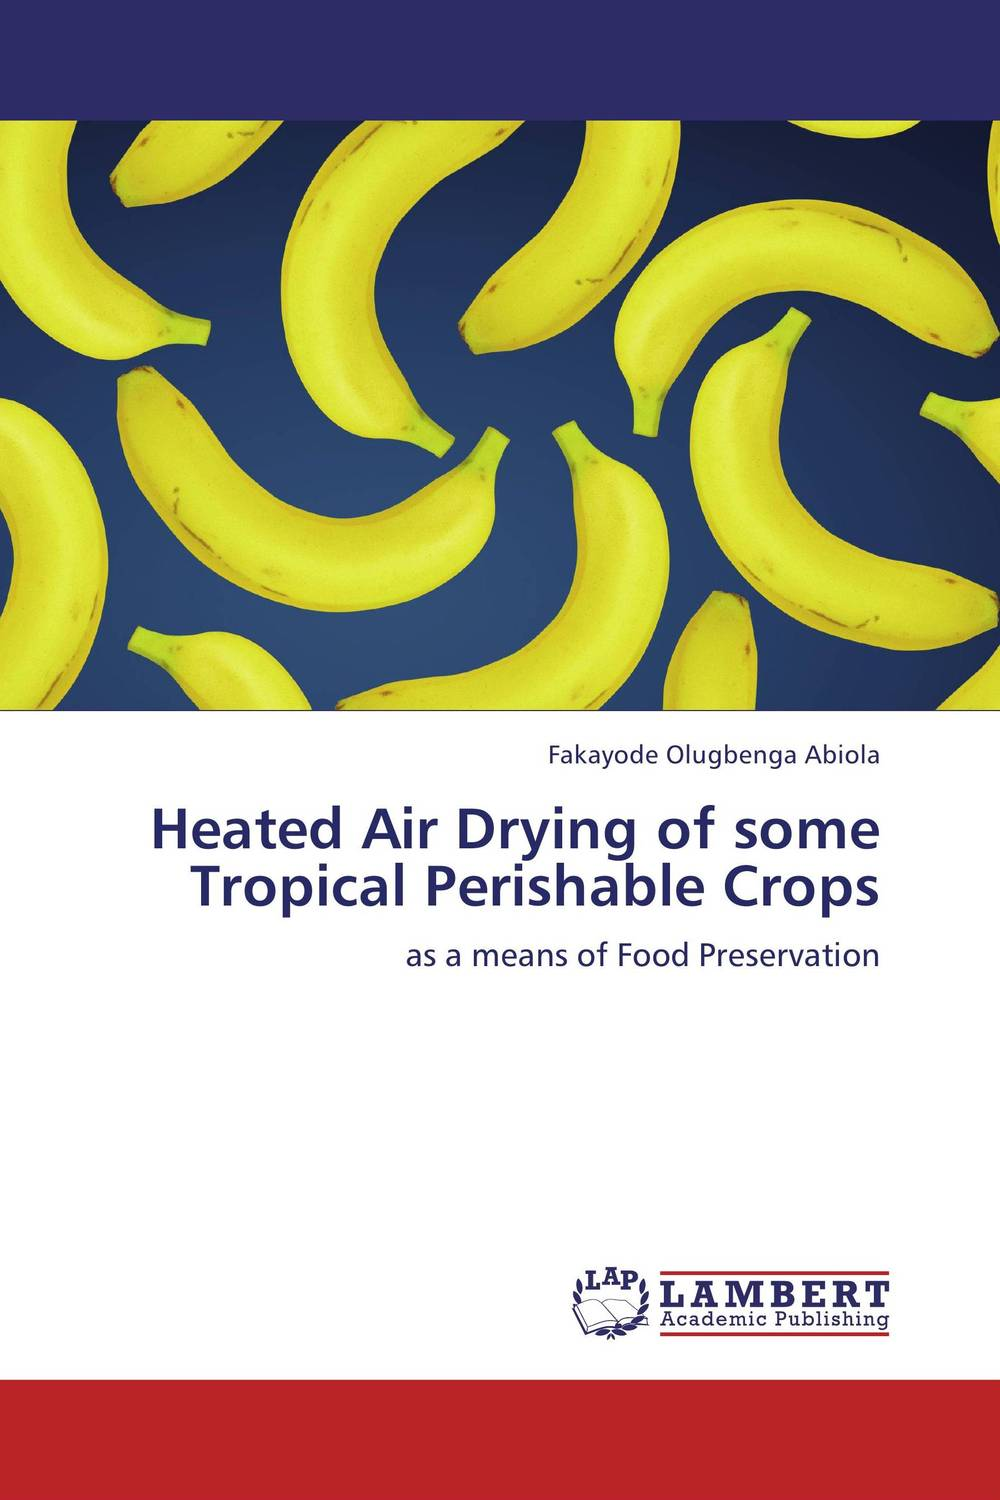 Heated Air Drying of some Tropical Perishable Crops